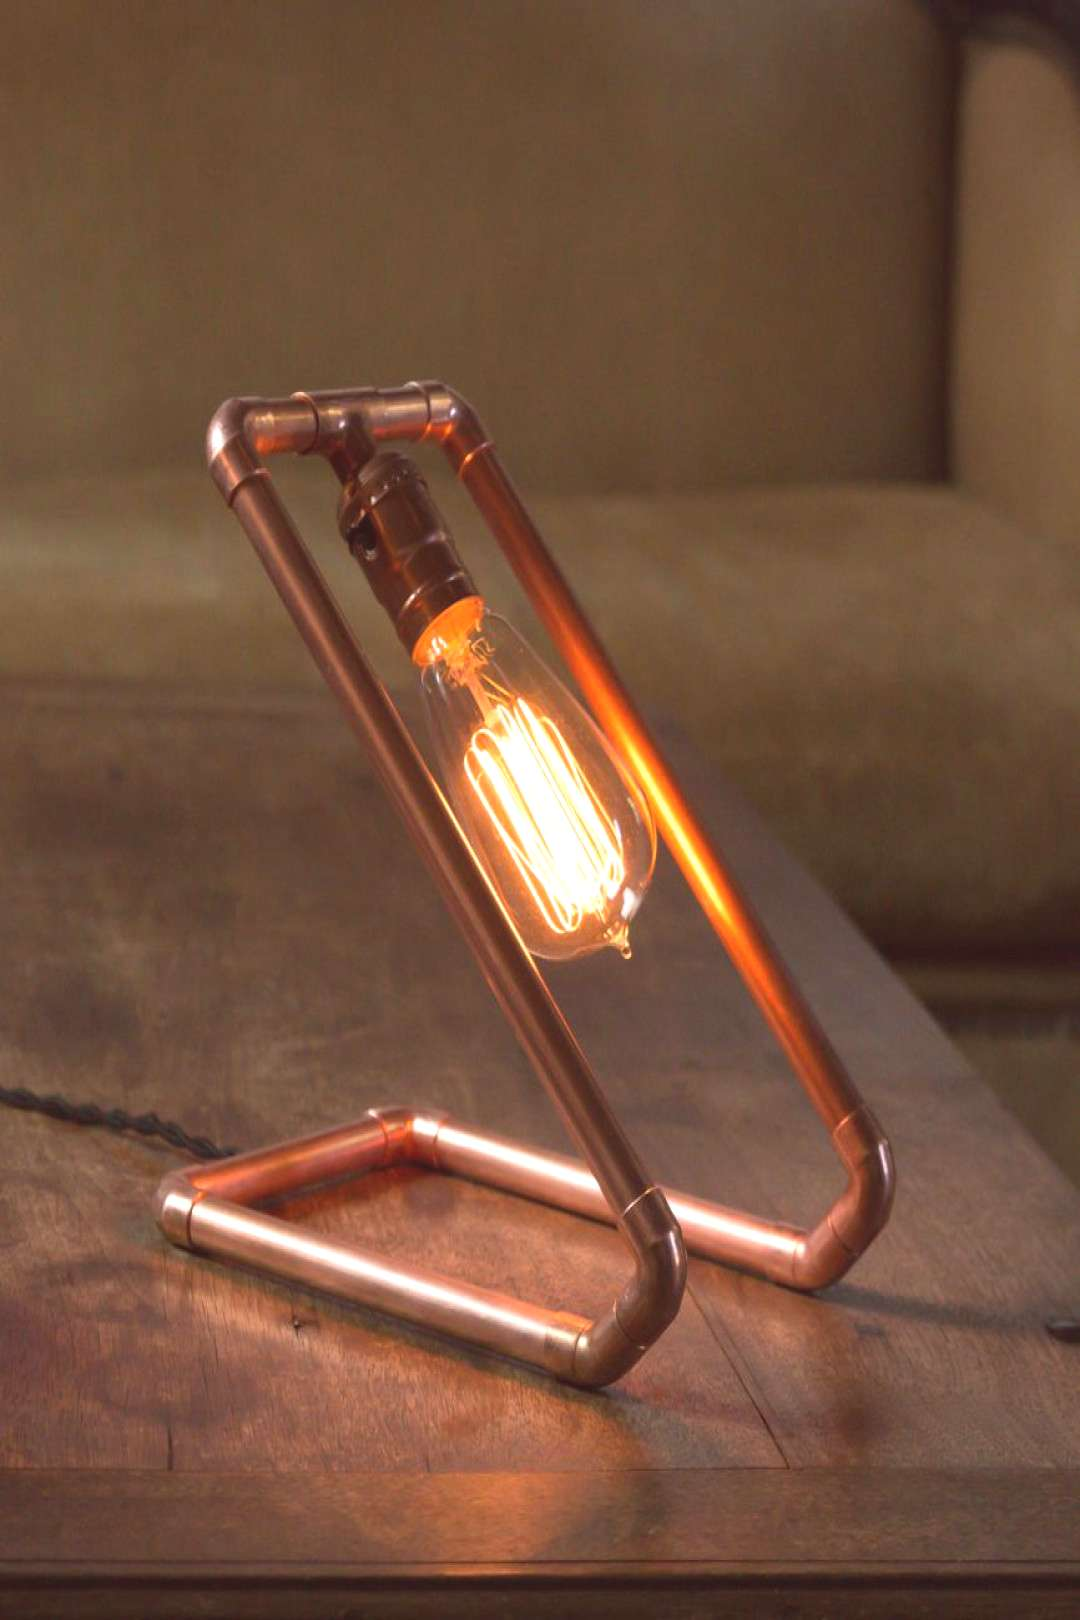 How to Make a Custom Copper Pipe Lamp | Man Made DIY | Crafts for Men